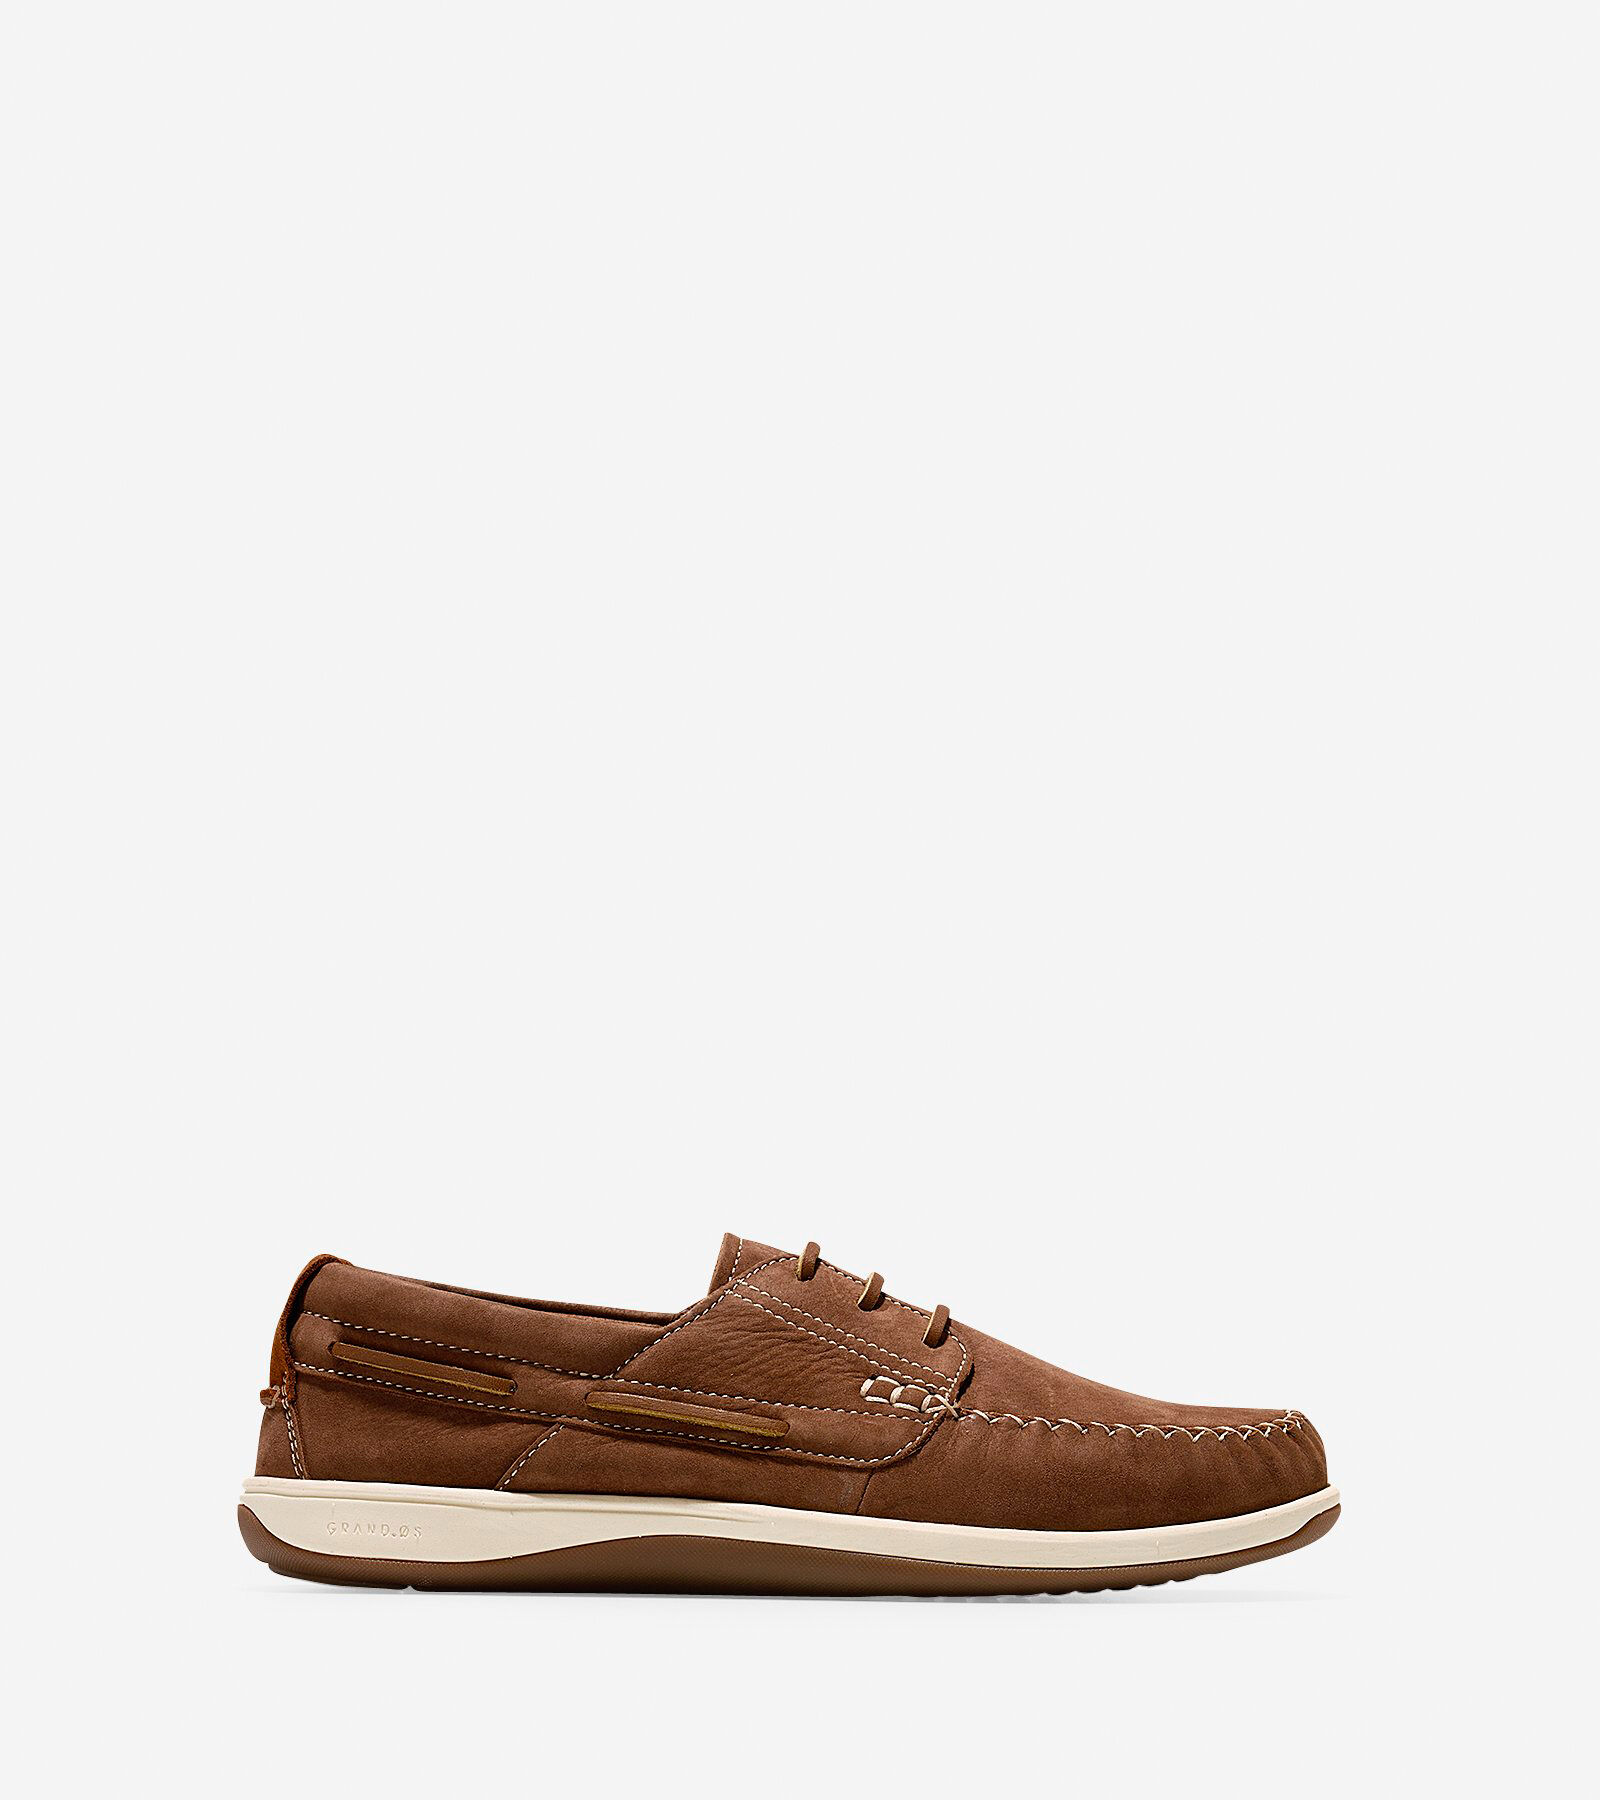 Boothbay Boat Shoe Cole Haan nbdL4m7